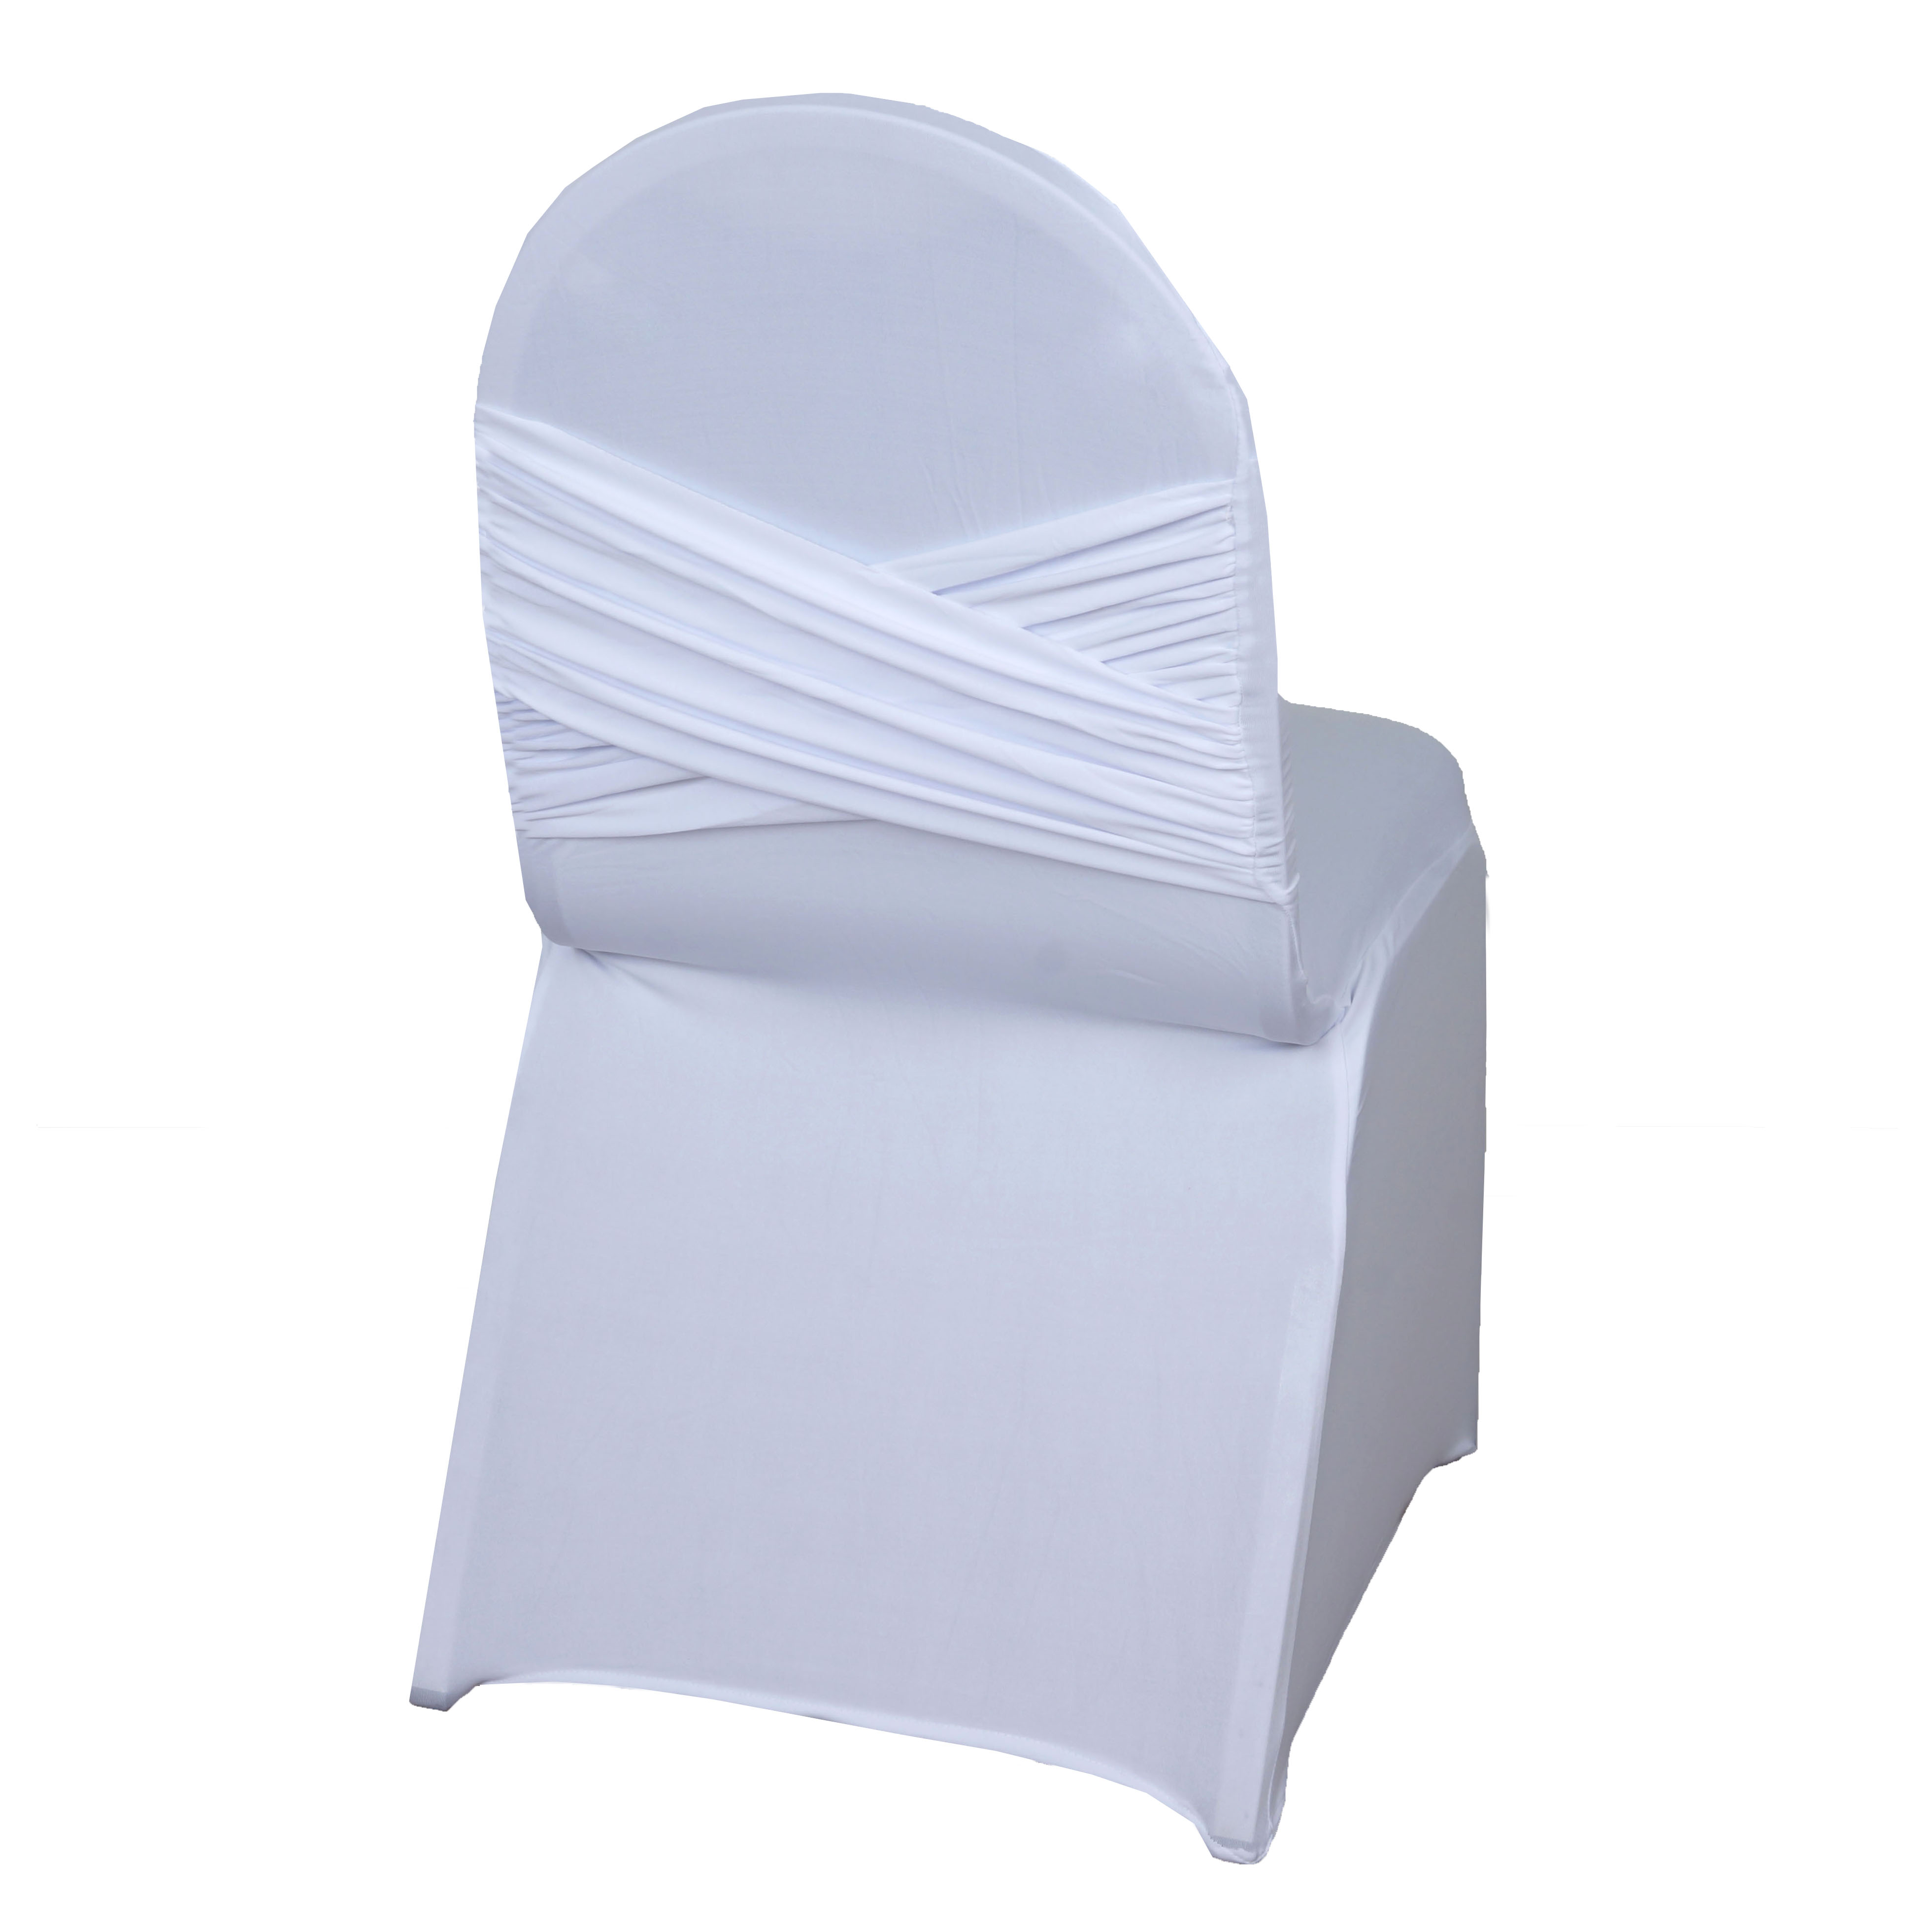 BalsaCircle Banquet Spandex Stretchable Chair Covers Crisscross Design  Slipcovers For Party Wedding Home Decorations   Walmart.com